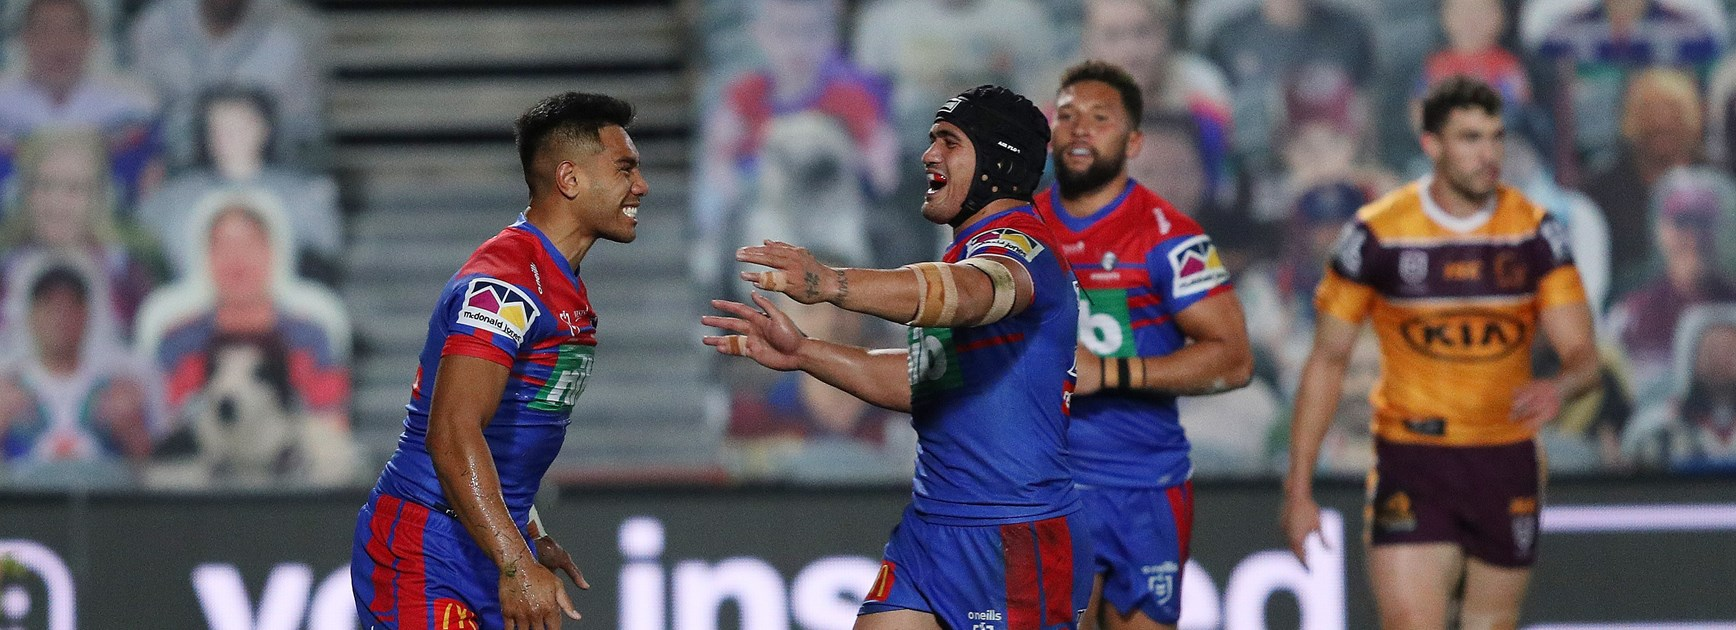 Knights too good for Broncos in Gosford